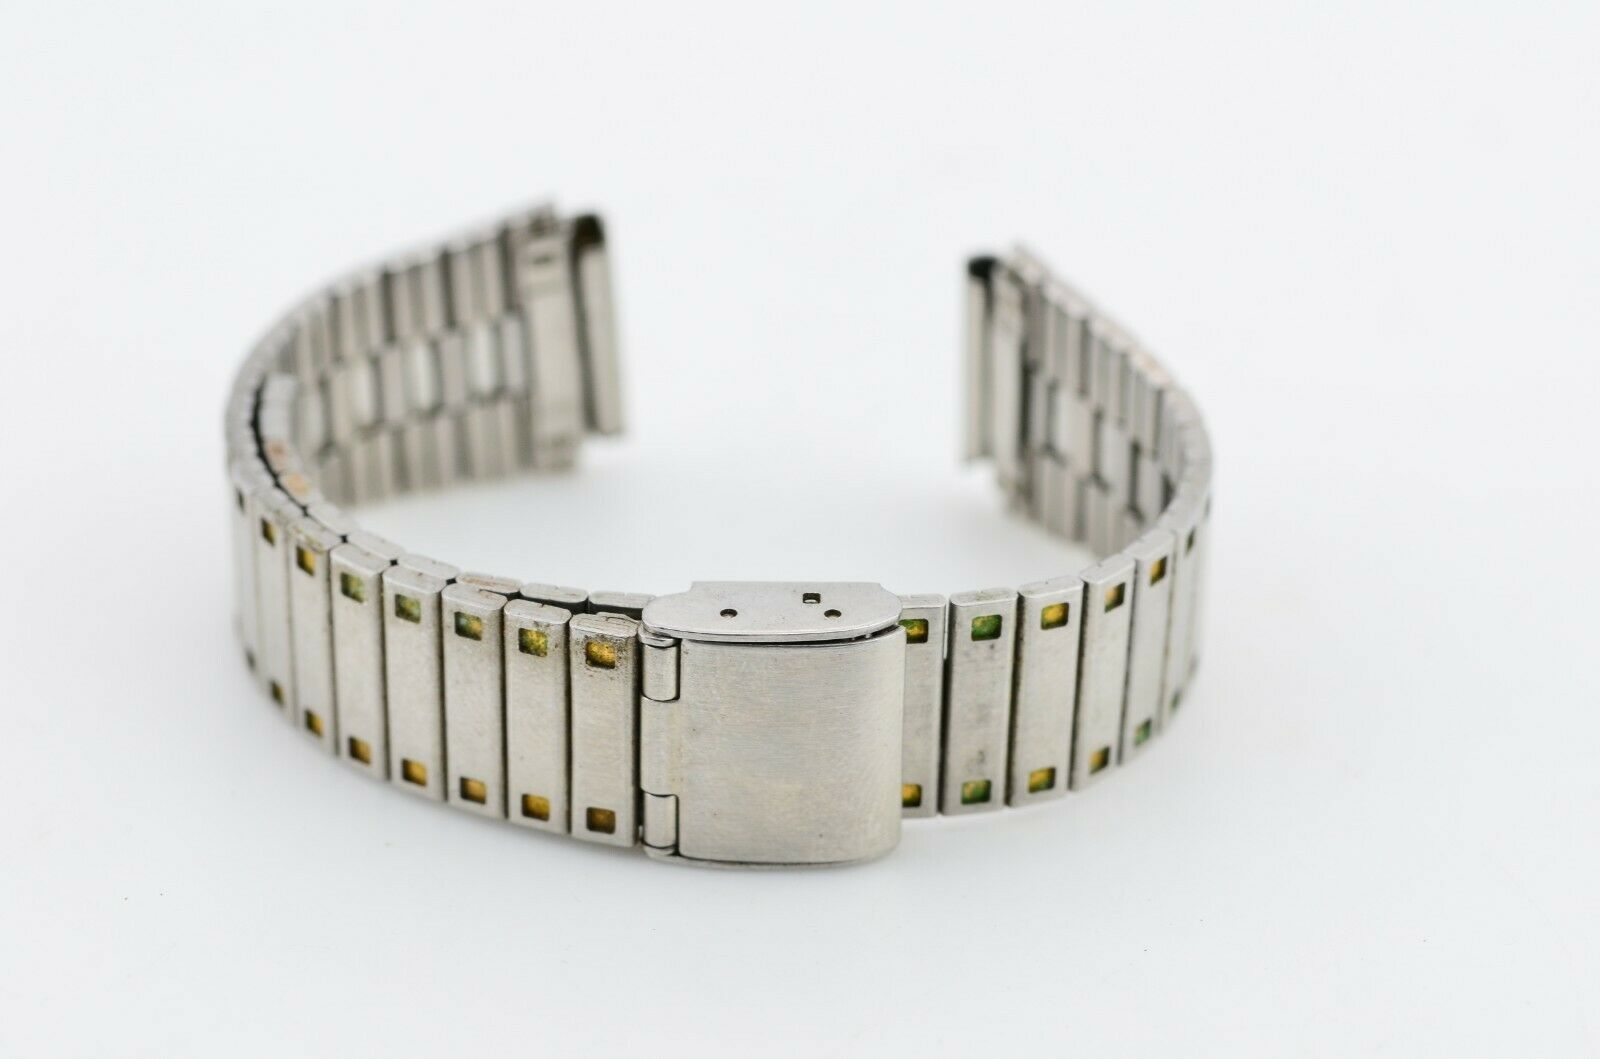 F902 16mm Vintage 1980s Unbranded Watch Bracelet Stainless Steel JDM Japan 13.2